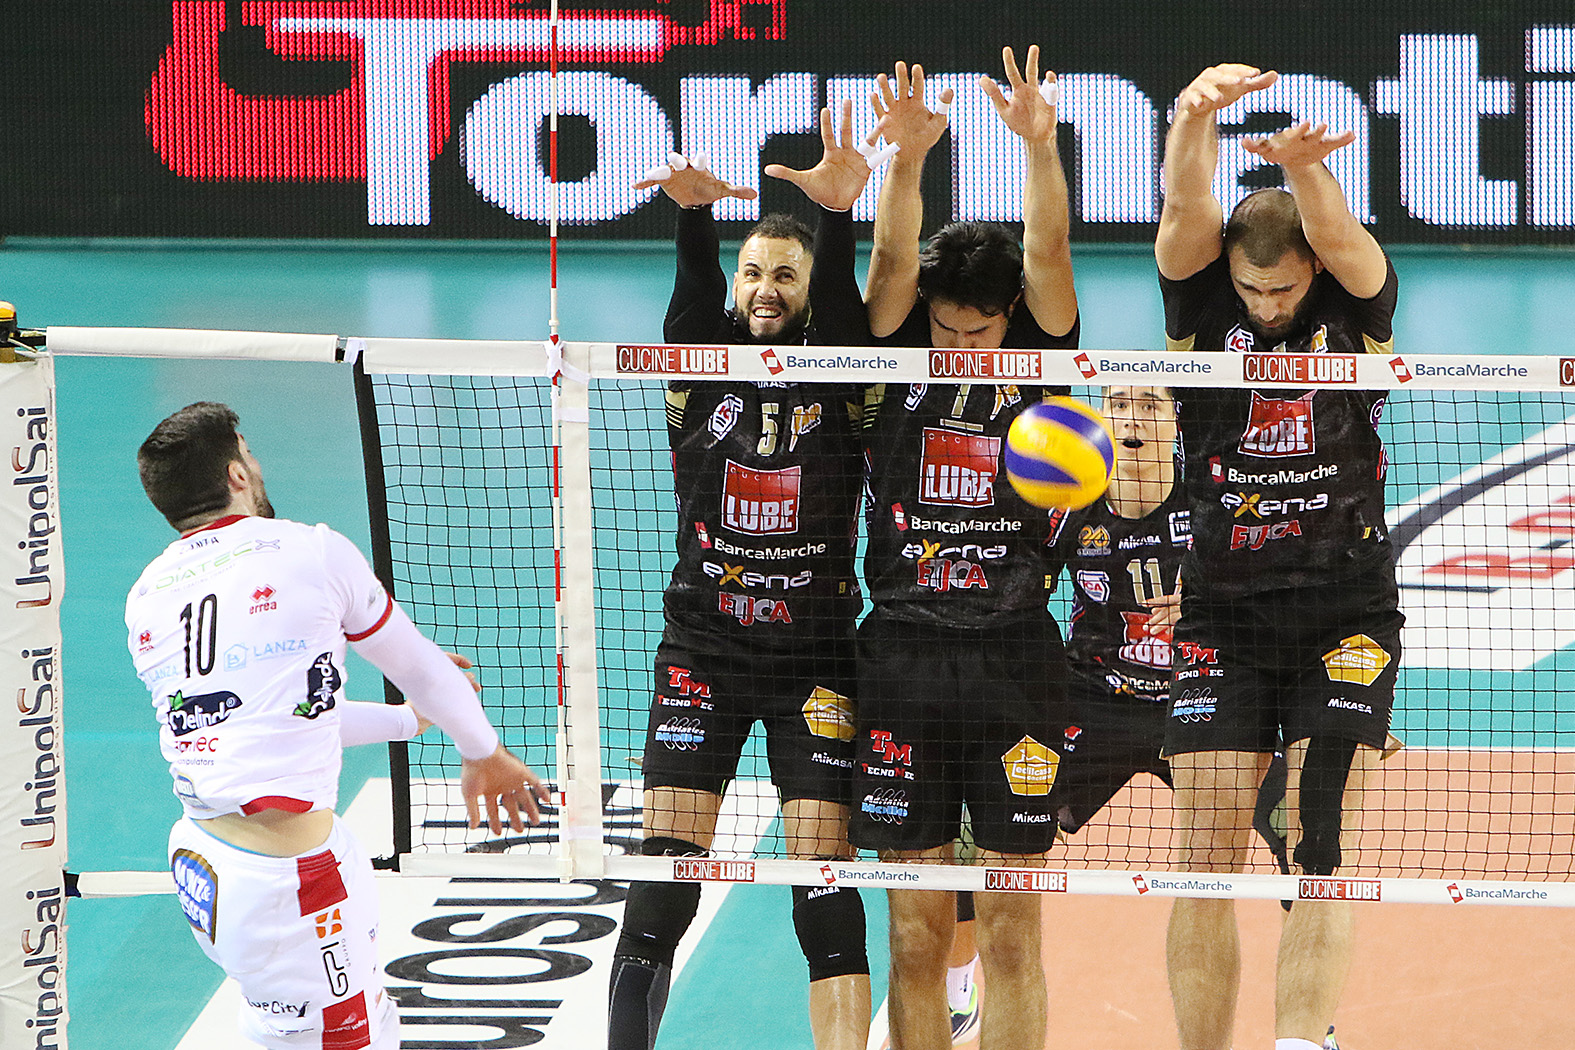 Volley, a Citivanova gara 1 di finale